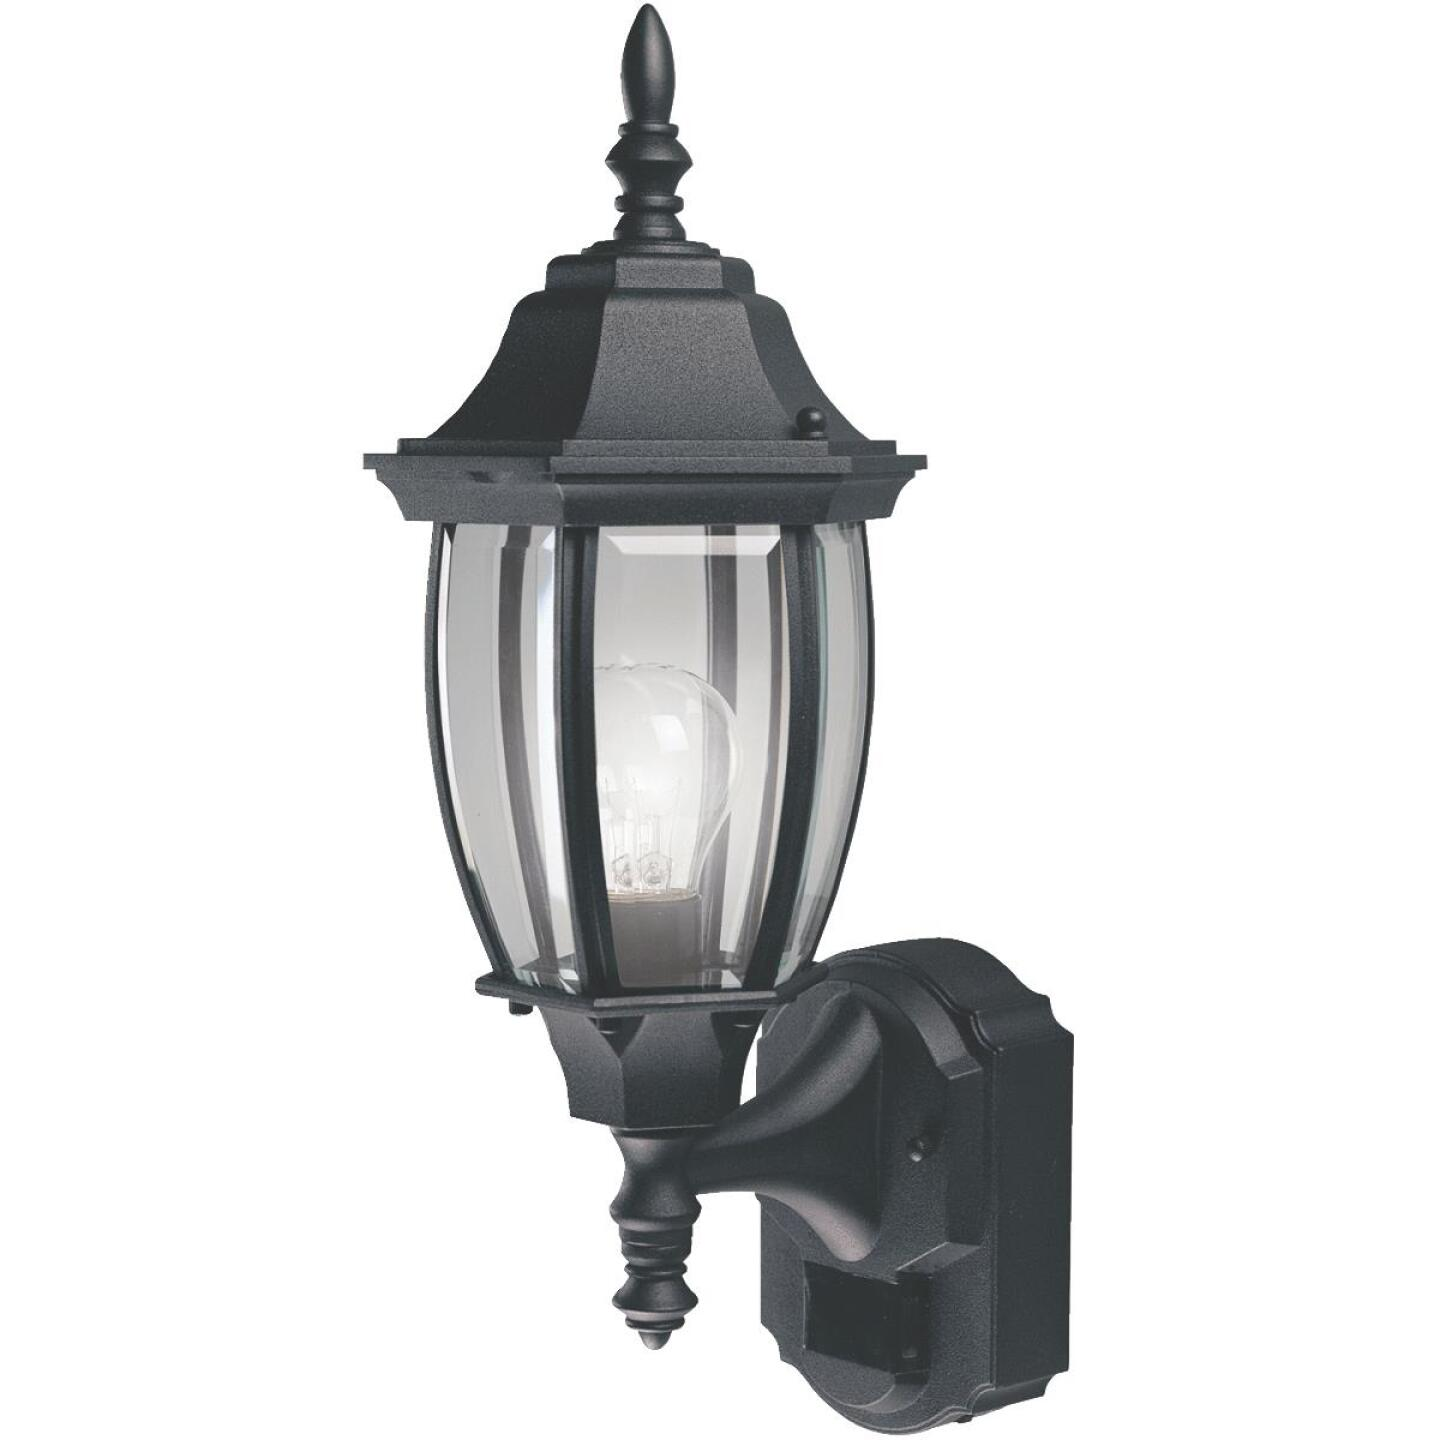 Heath Zenith Black Incandescent Dusk-To-Dawn/Motion Activated Outdoor Wall Light Fixture Image 1